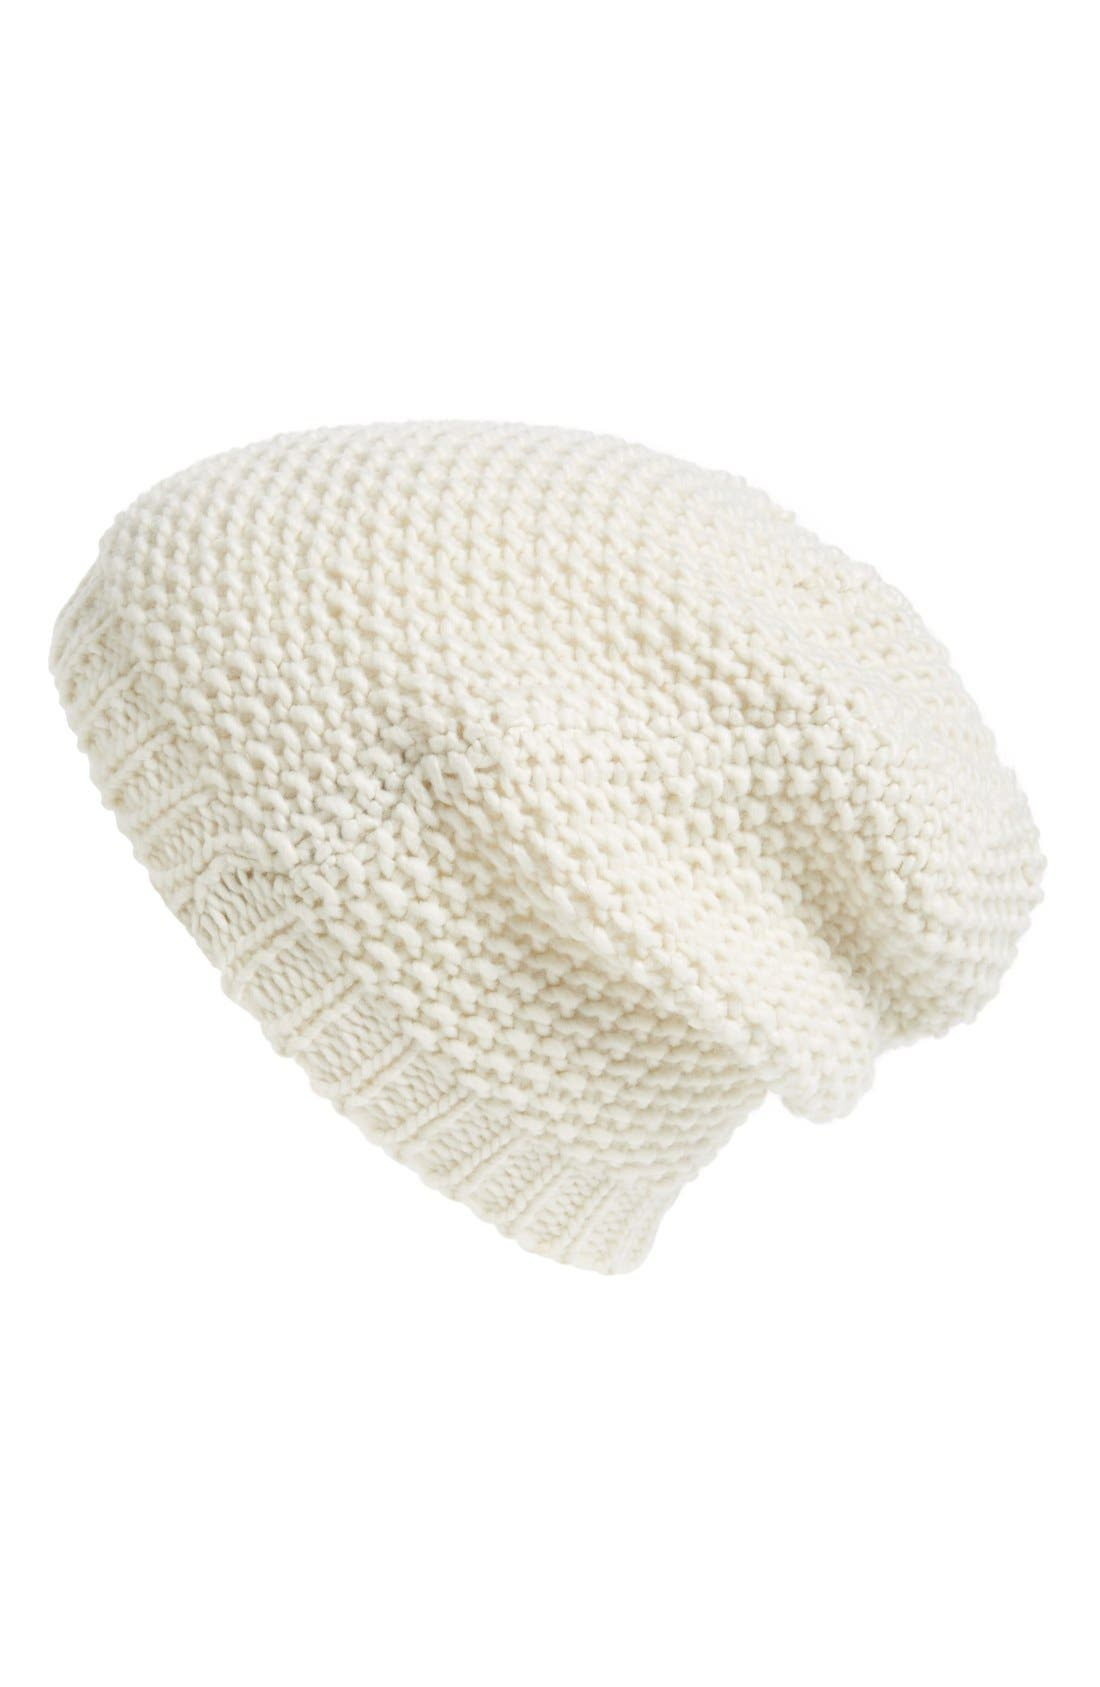 Alternate Image 1 Selected - Phase 3 Basket Knit Slouchy Beanie